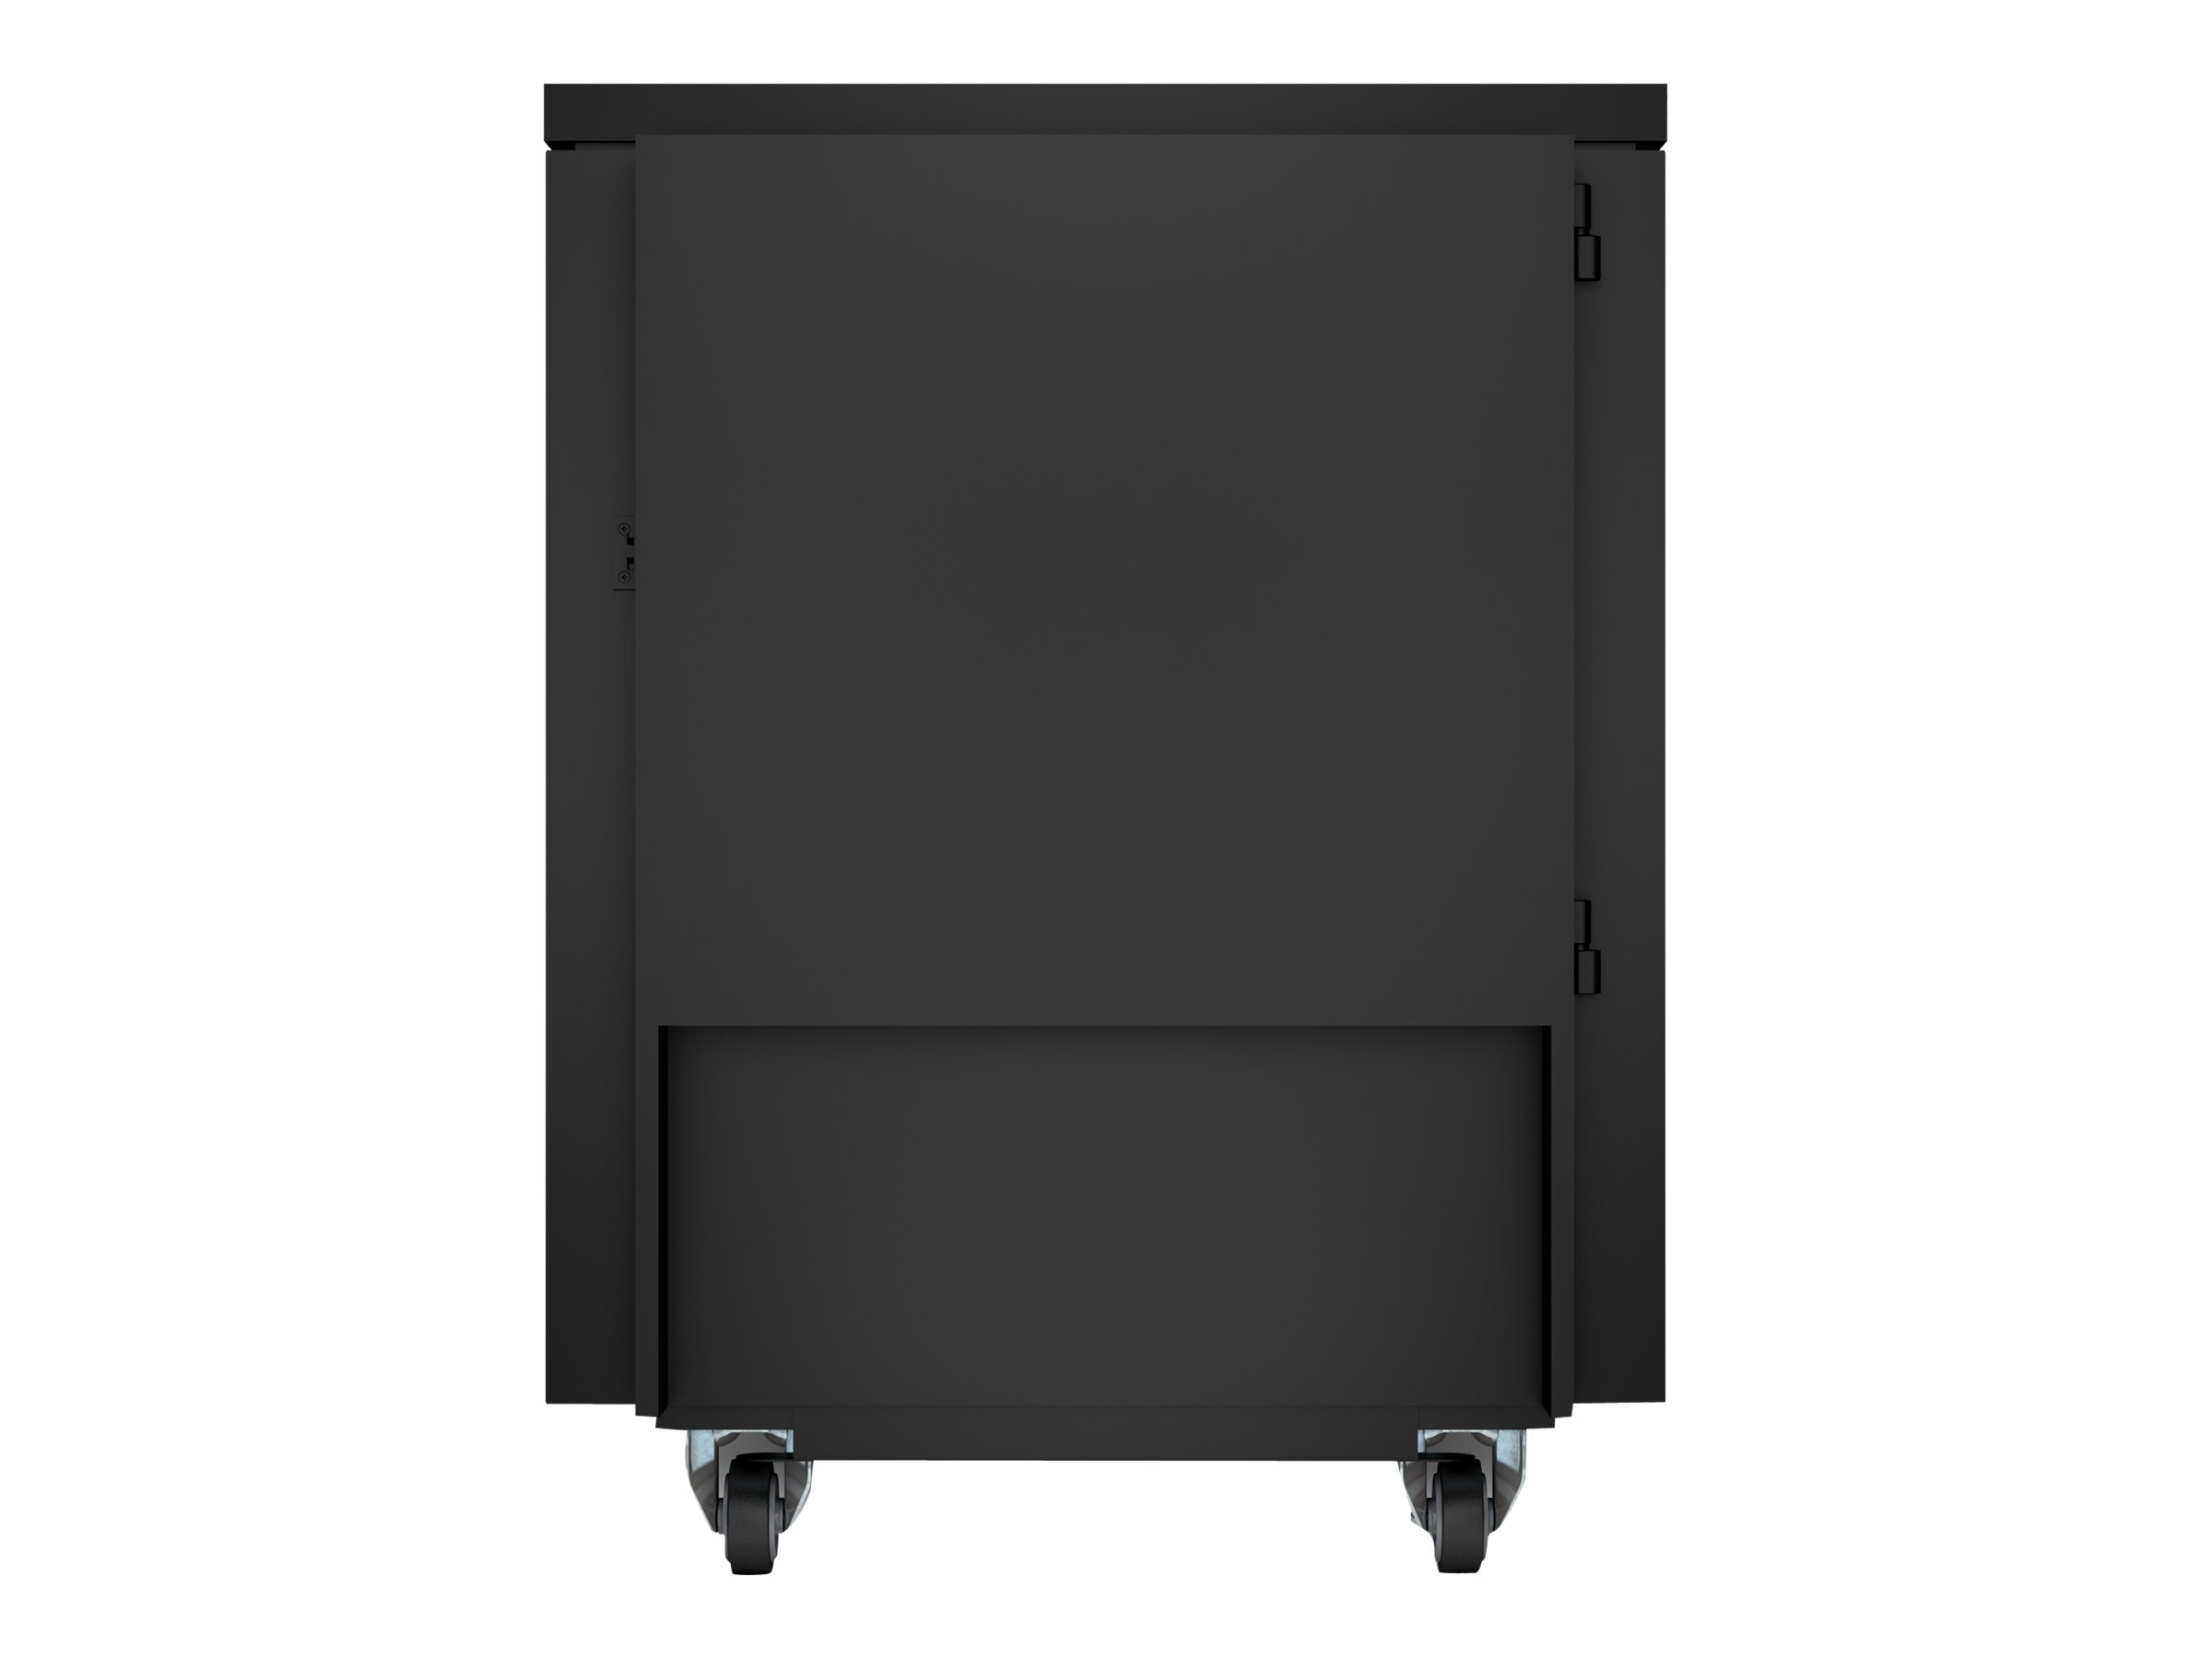 APC Netshelter CX 18U 750mm x 1130mm Enclosure, Black Finish, AR4018X429, 31863722, Racks & Cabinets